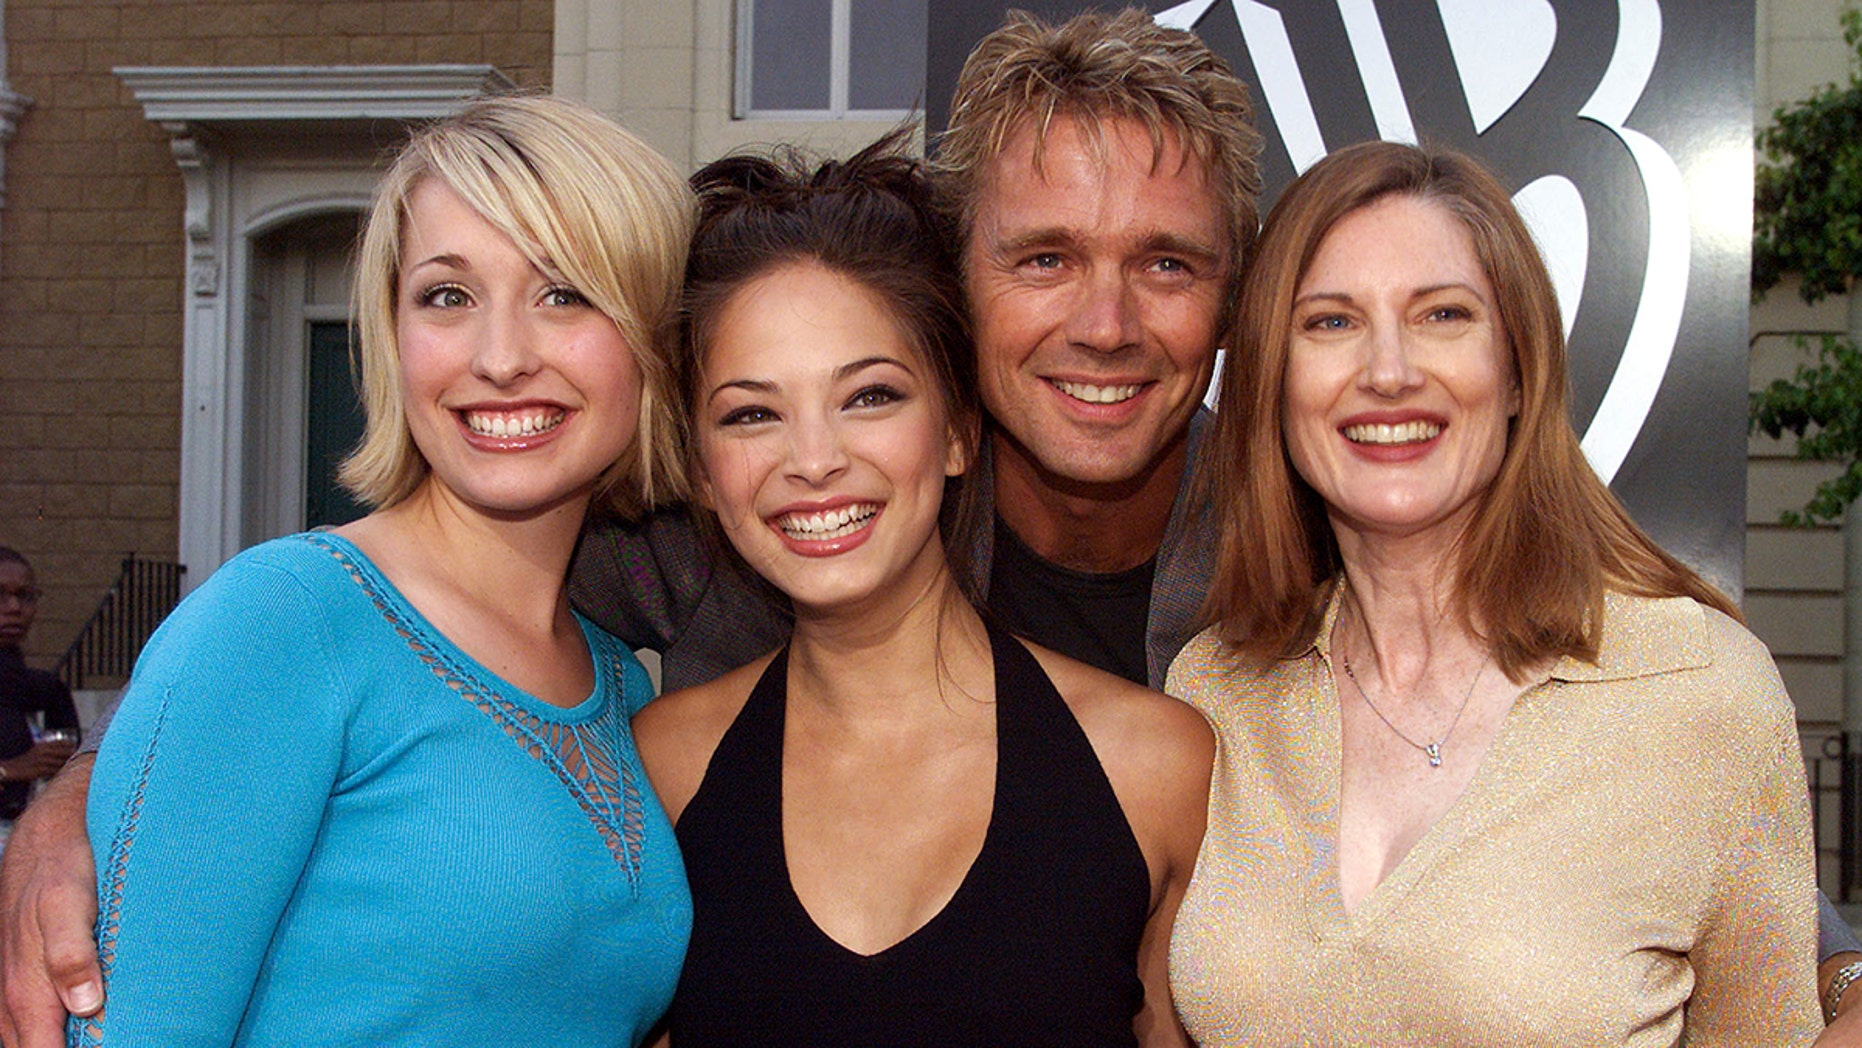 """Actor John Scheneider poses with co-stars (L-R) Allison Mack, Kristin Kreuk and Annette O'Toole from the new WB television network action series """"Smallvile""""  at the network's summer All-Star party at the Warner Bros. Studios in Burbank, California, July 15, 2001. The series depicts the classic Superman character as a teenaged Clark Kent. - PBEAHUKZNCQ"""